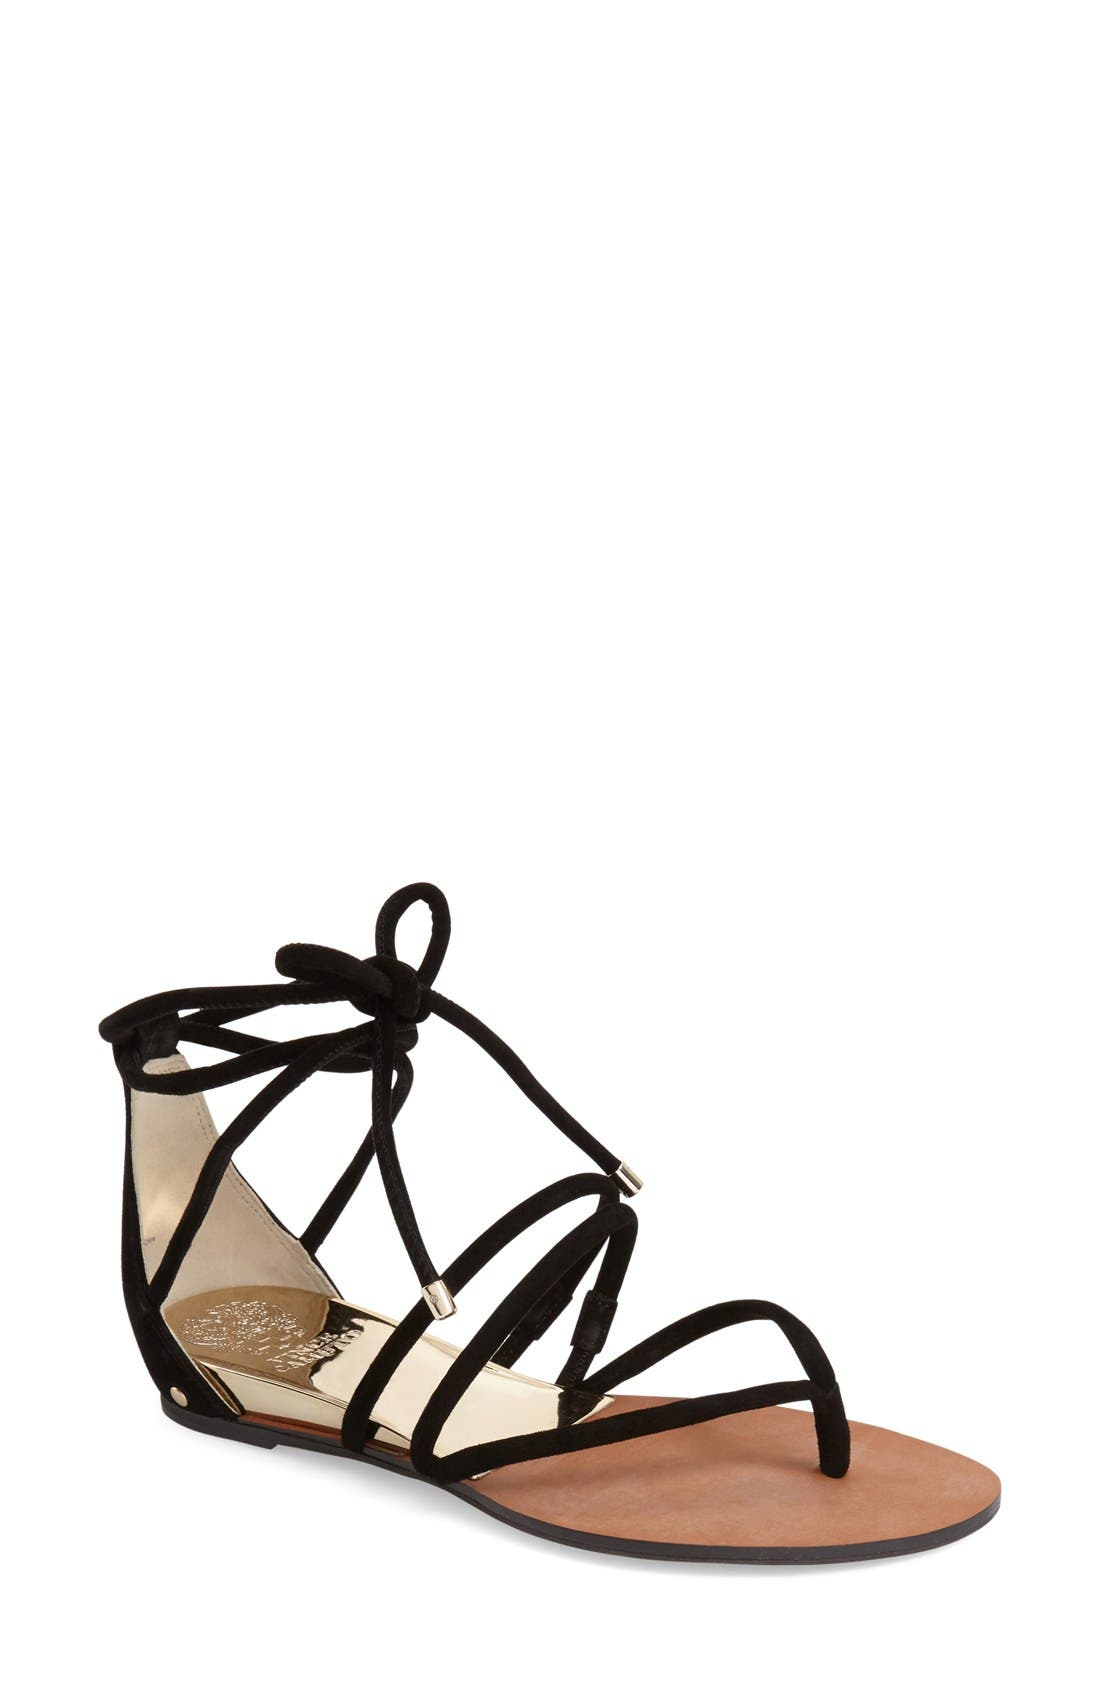 Alternate Image 1 Selected - Vince Camuto 'Adalson' Strappy Thong Sandal (Women)